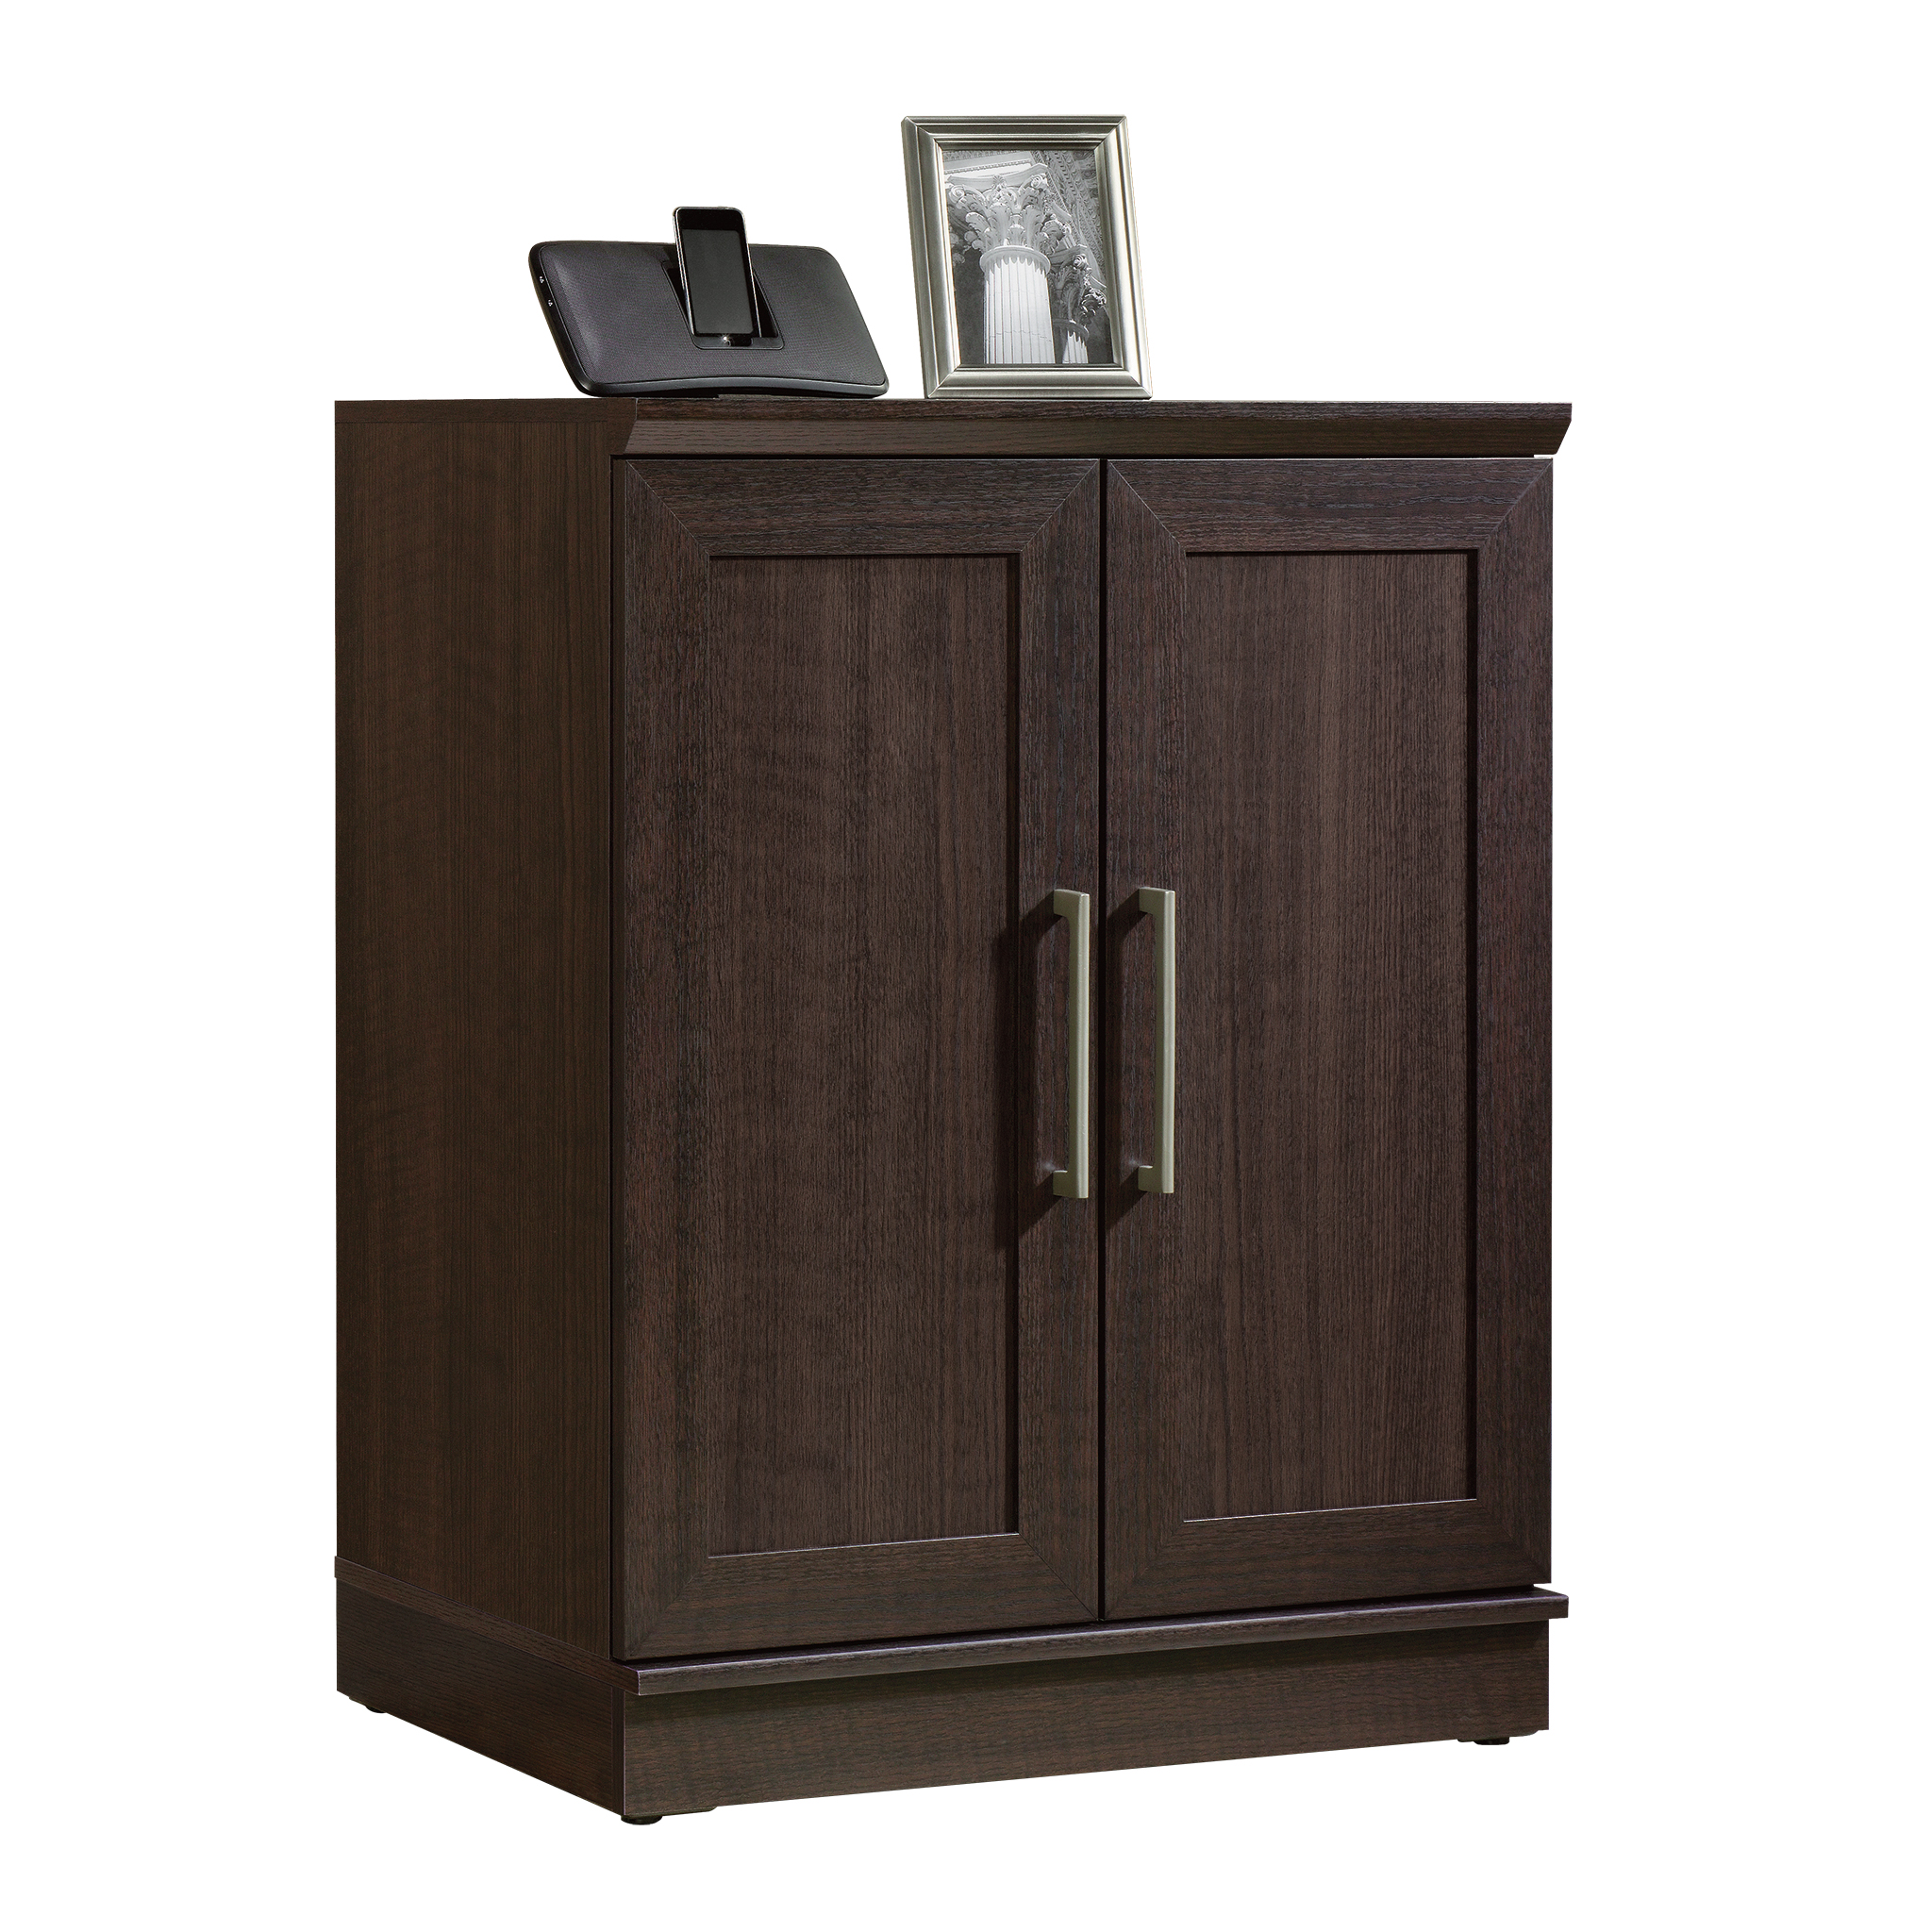 Sauder Homeplus Base Cabinet Dakota Oak Pantry